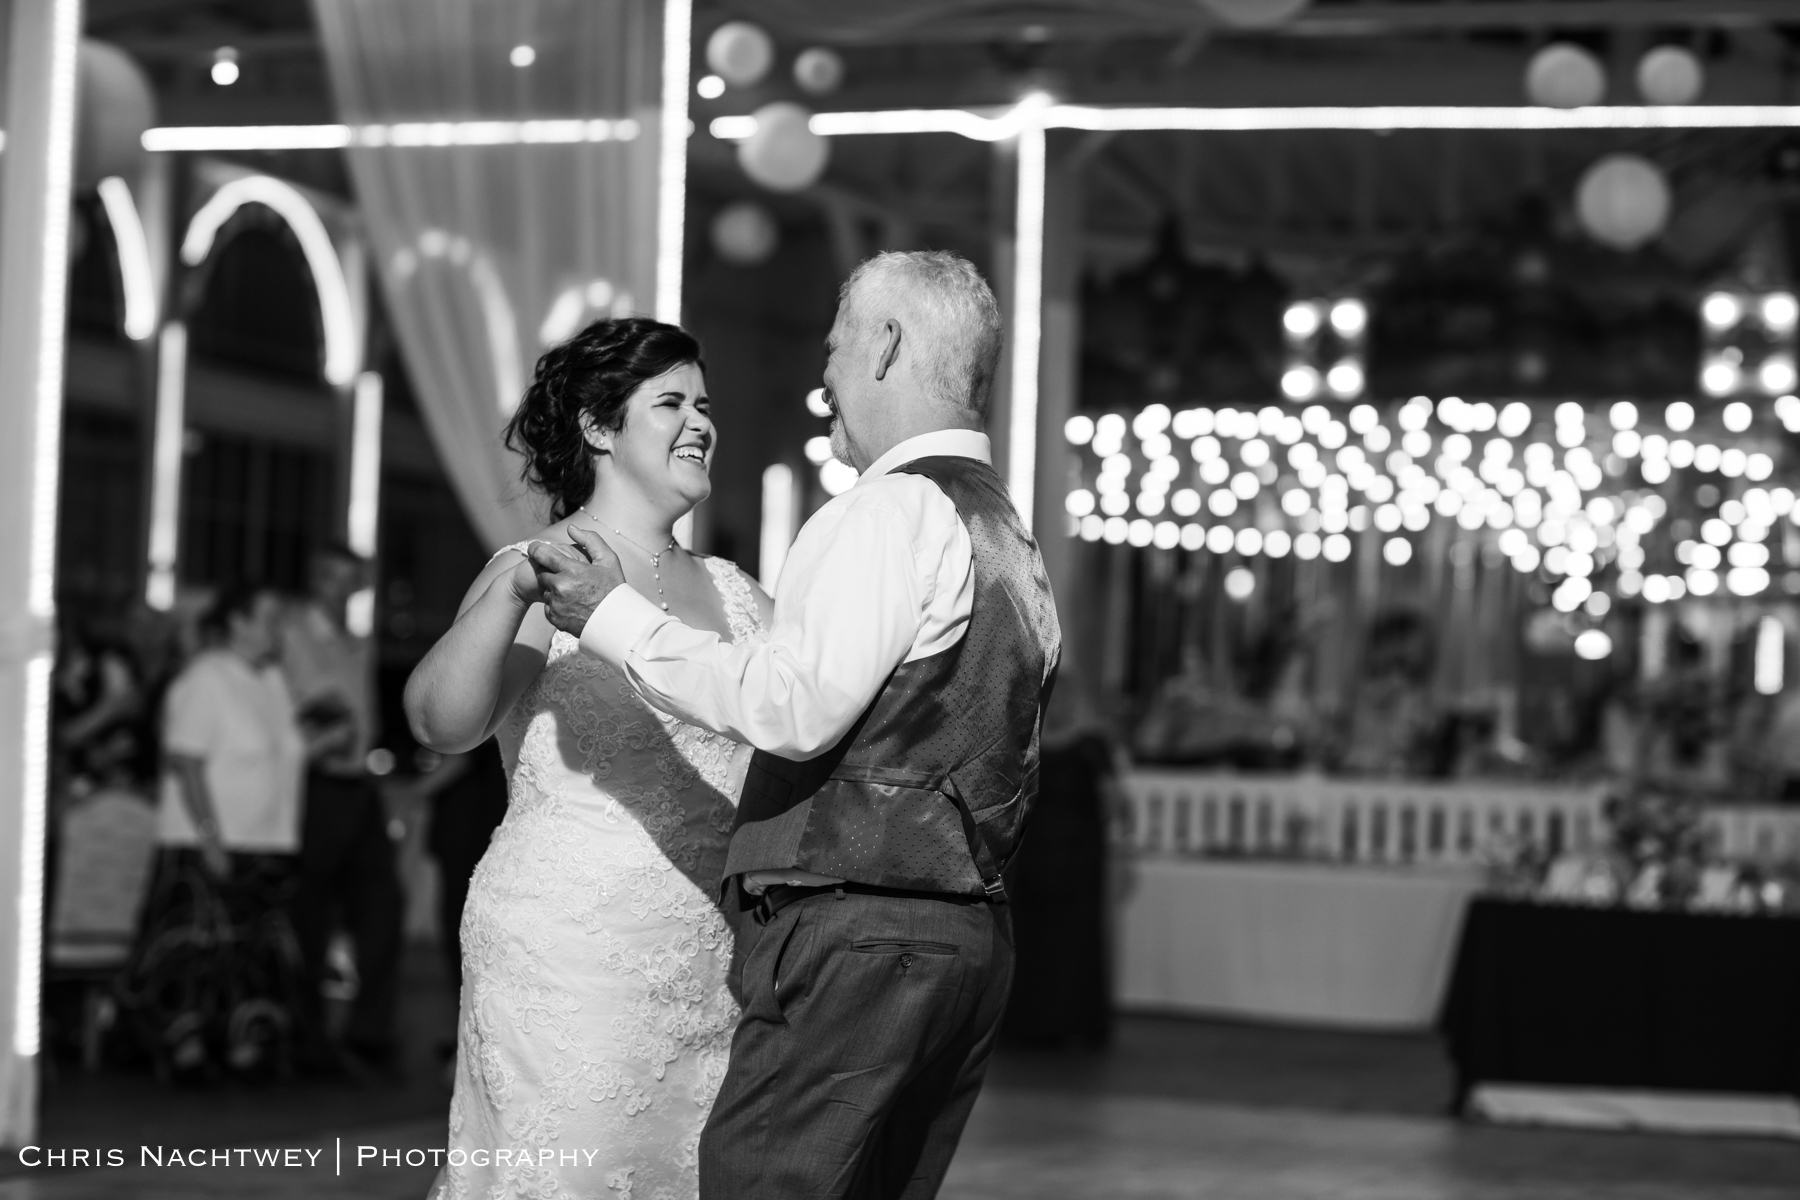 photos-wedding-lighthouse-point-park-carousel-new-haven-chris-nachtwey-photography-2019-59.jpg